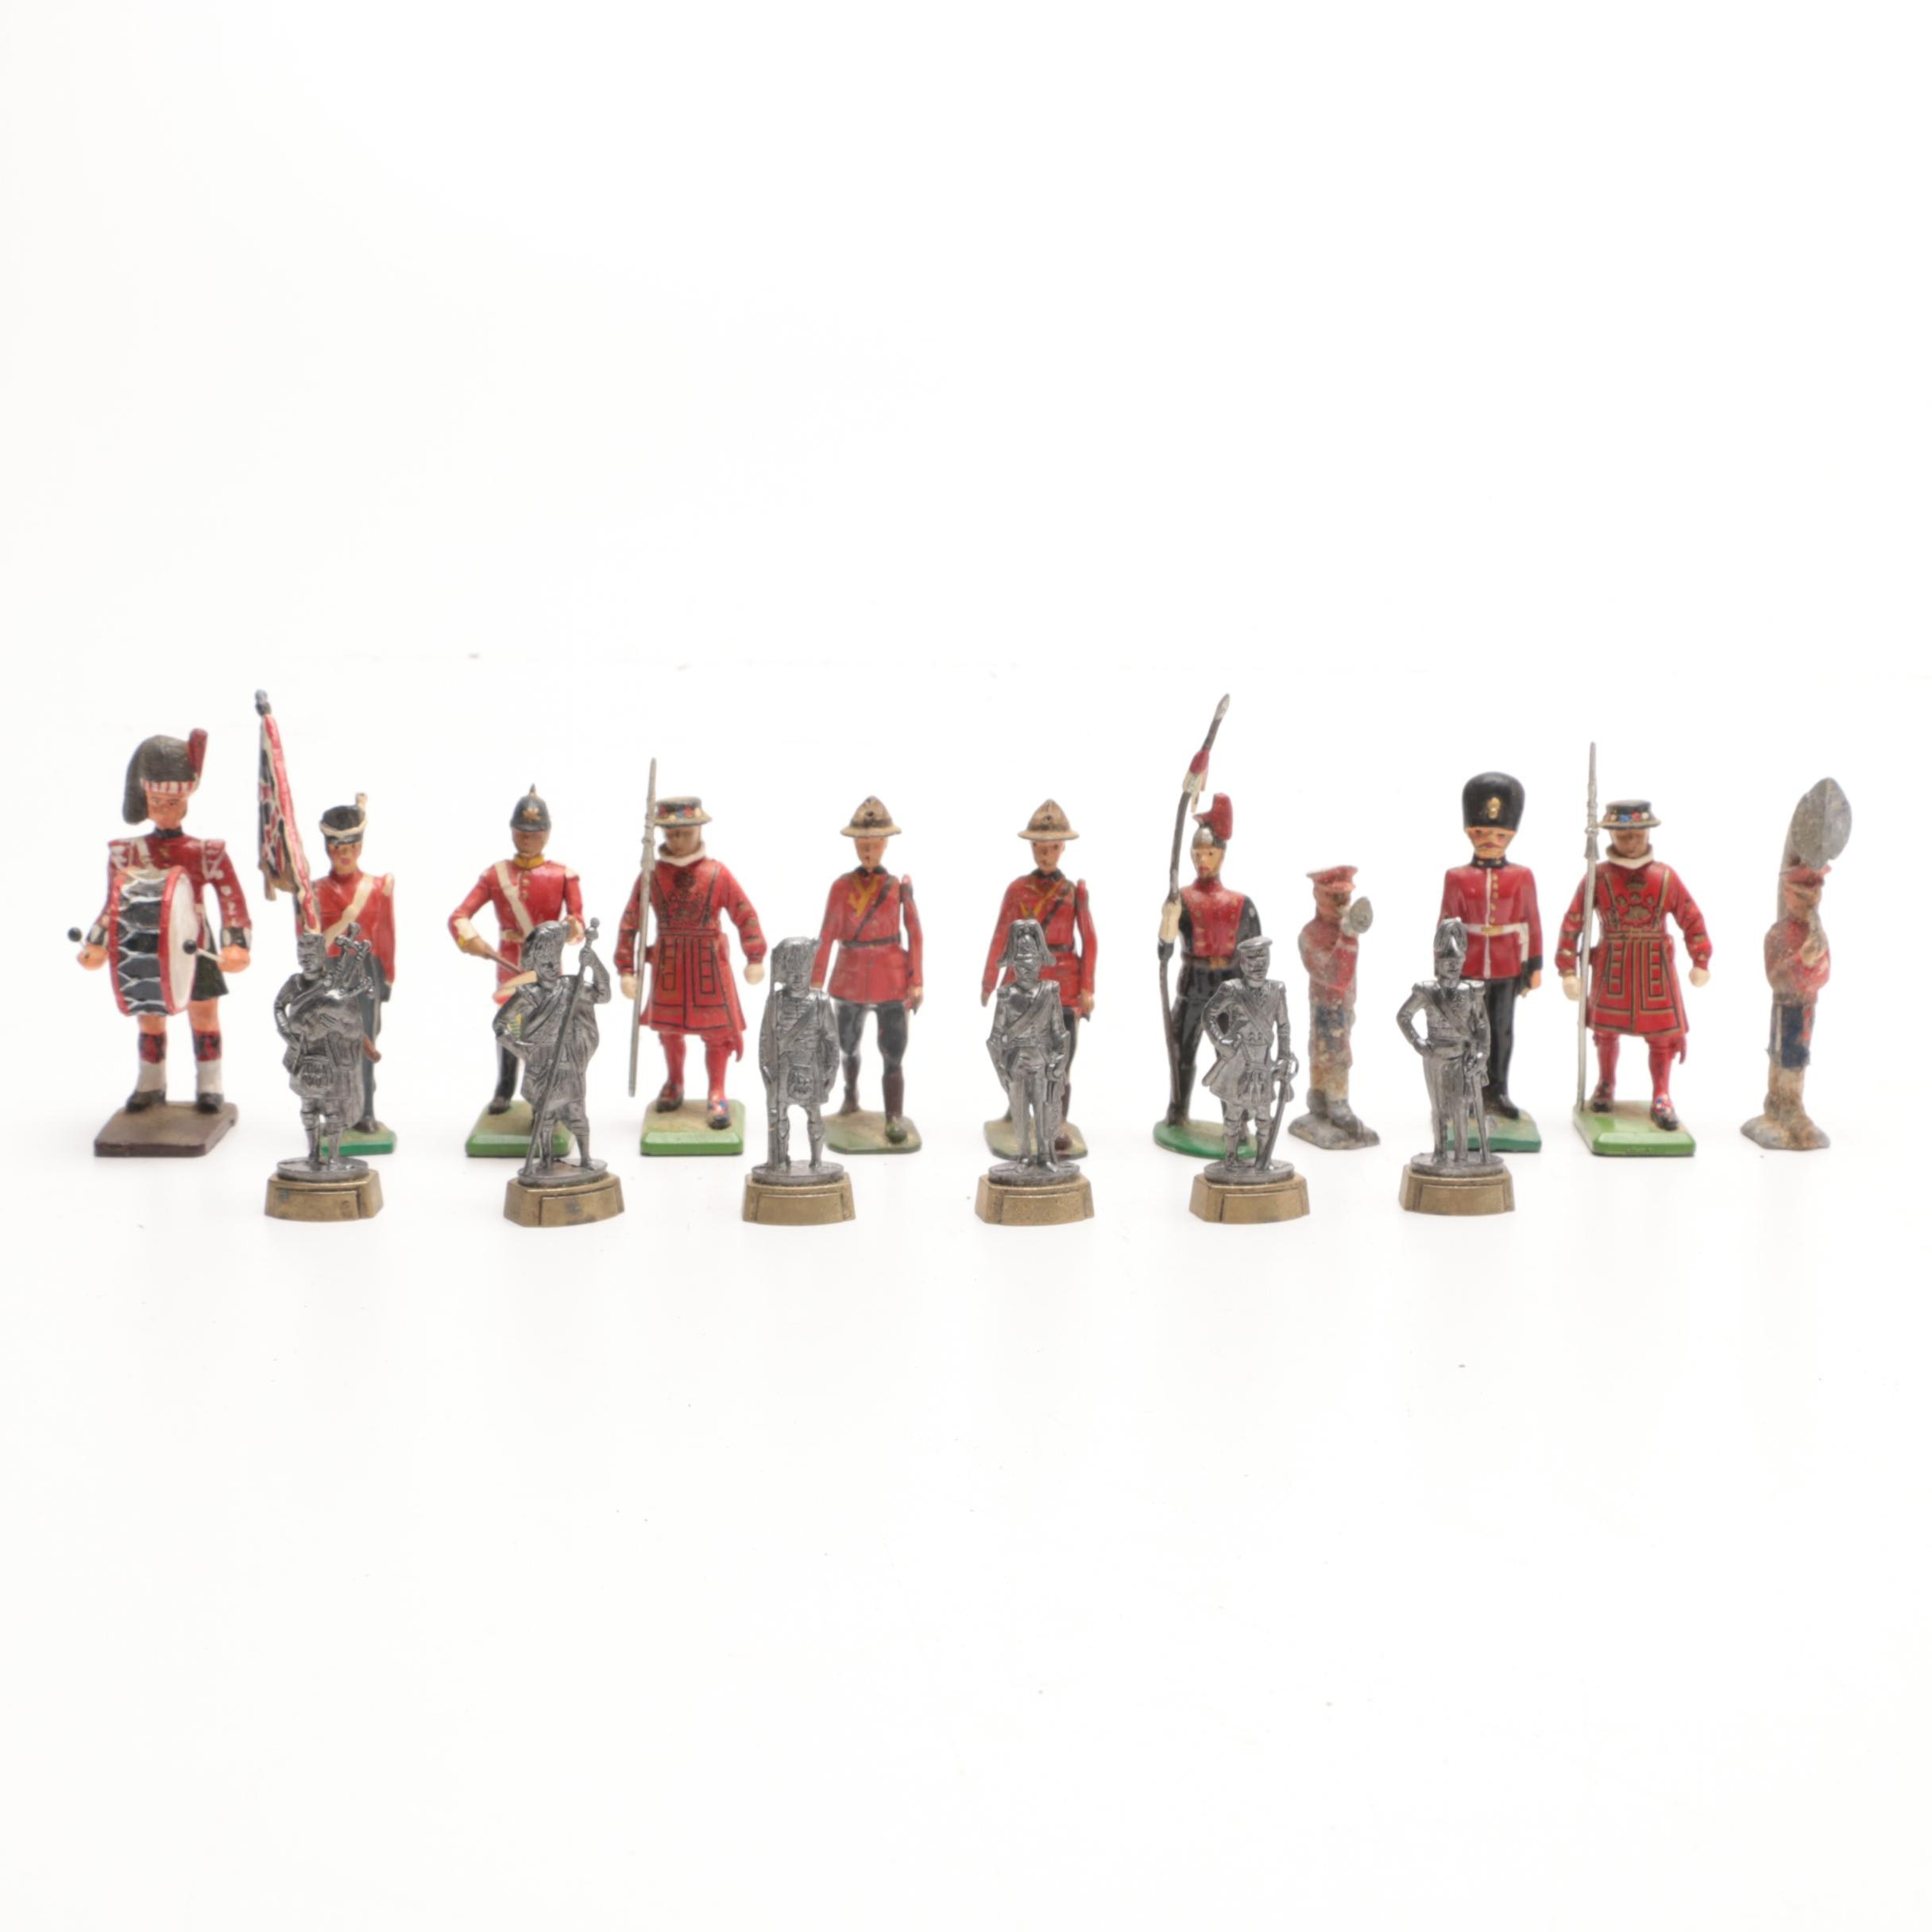 Vintage English and Contemporary Scottish Toy Lead Soldiers